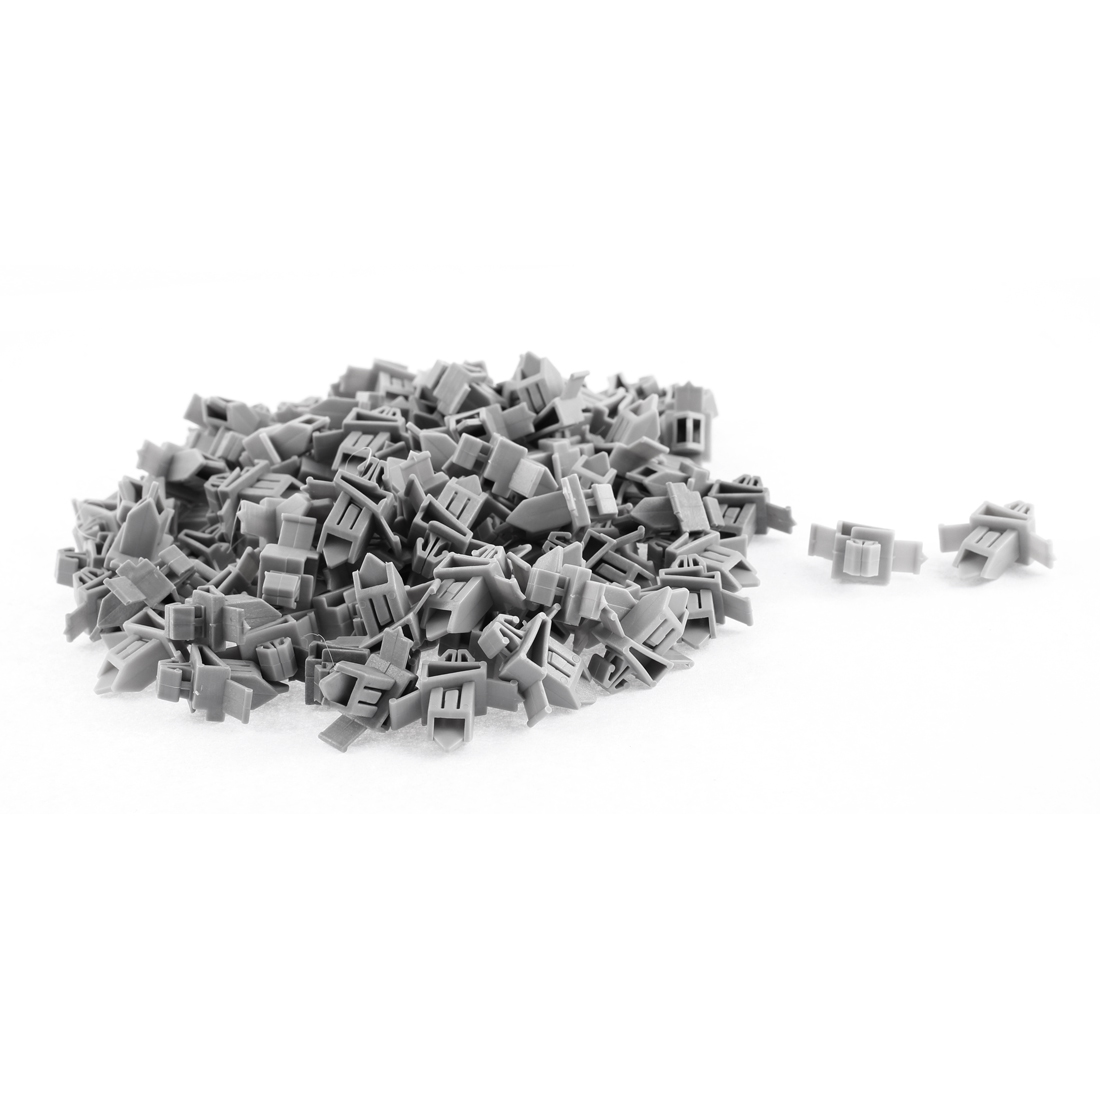 100 Pcs Gray Plastic Rivet Bumper Lining Trim Panel Retainer Fastener Clips for Toyota Prado